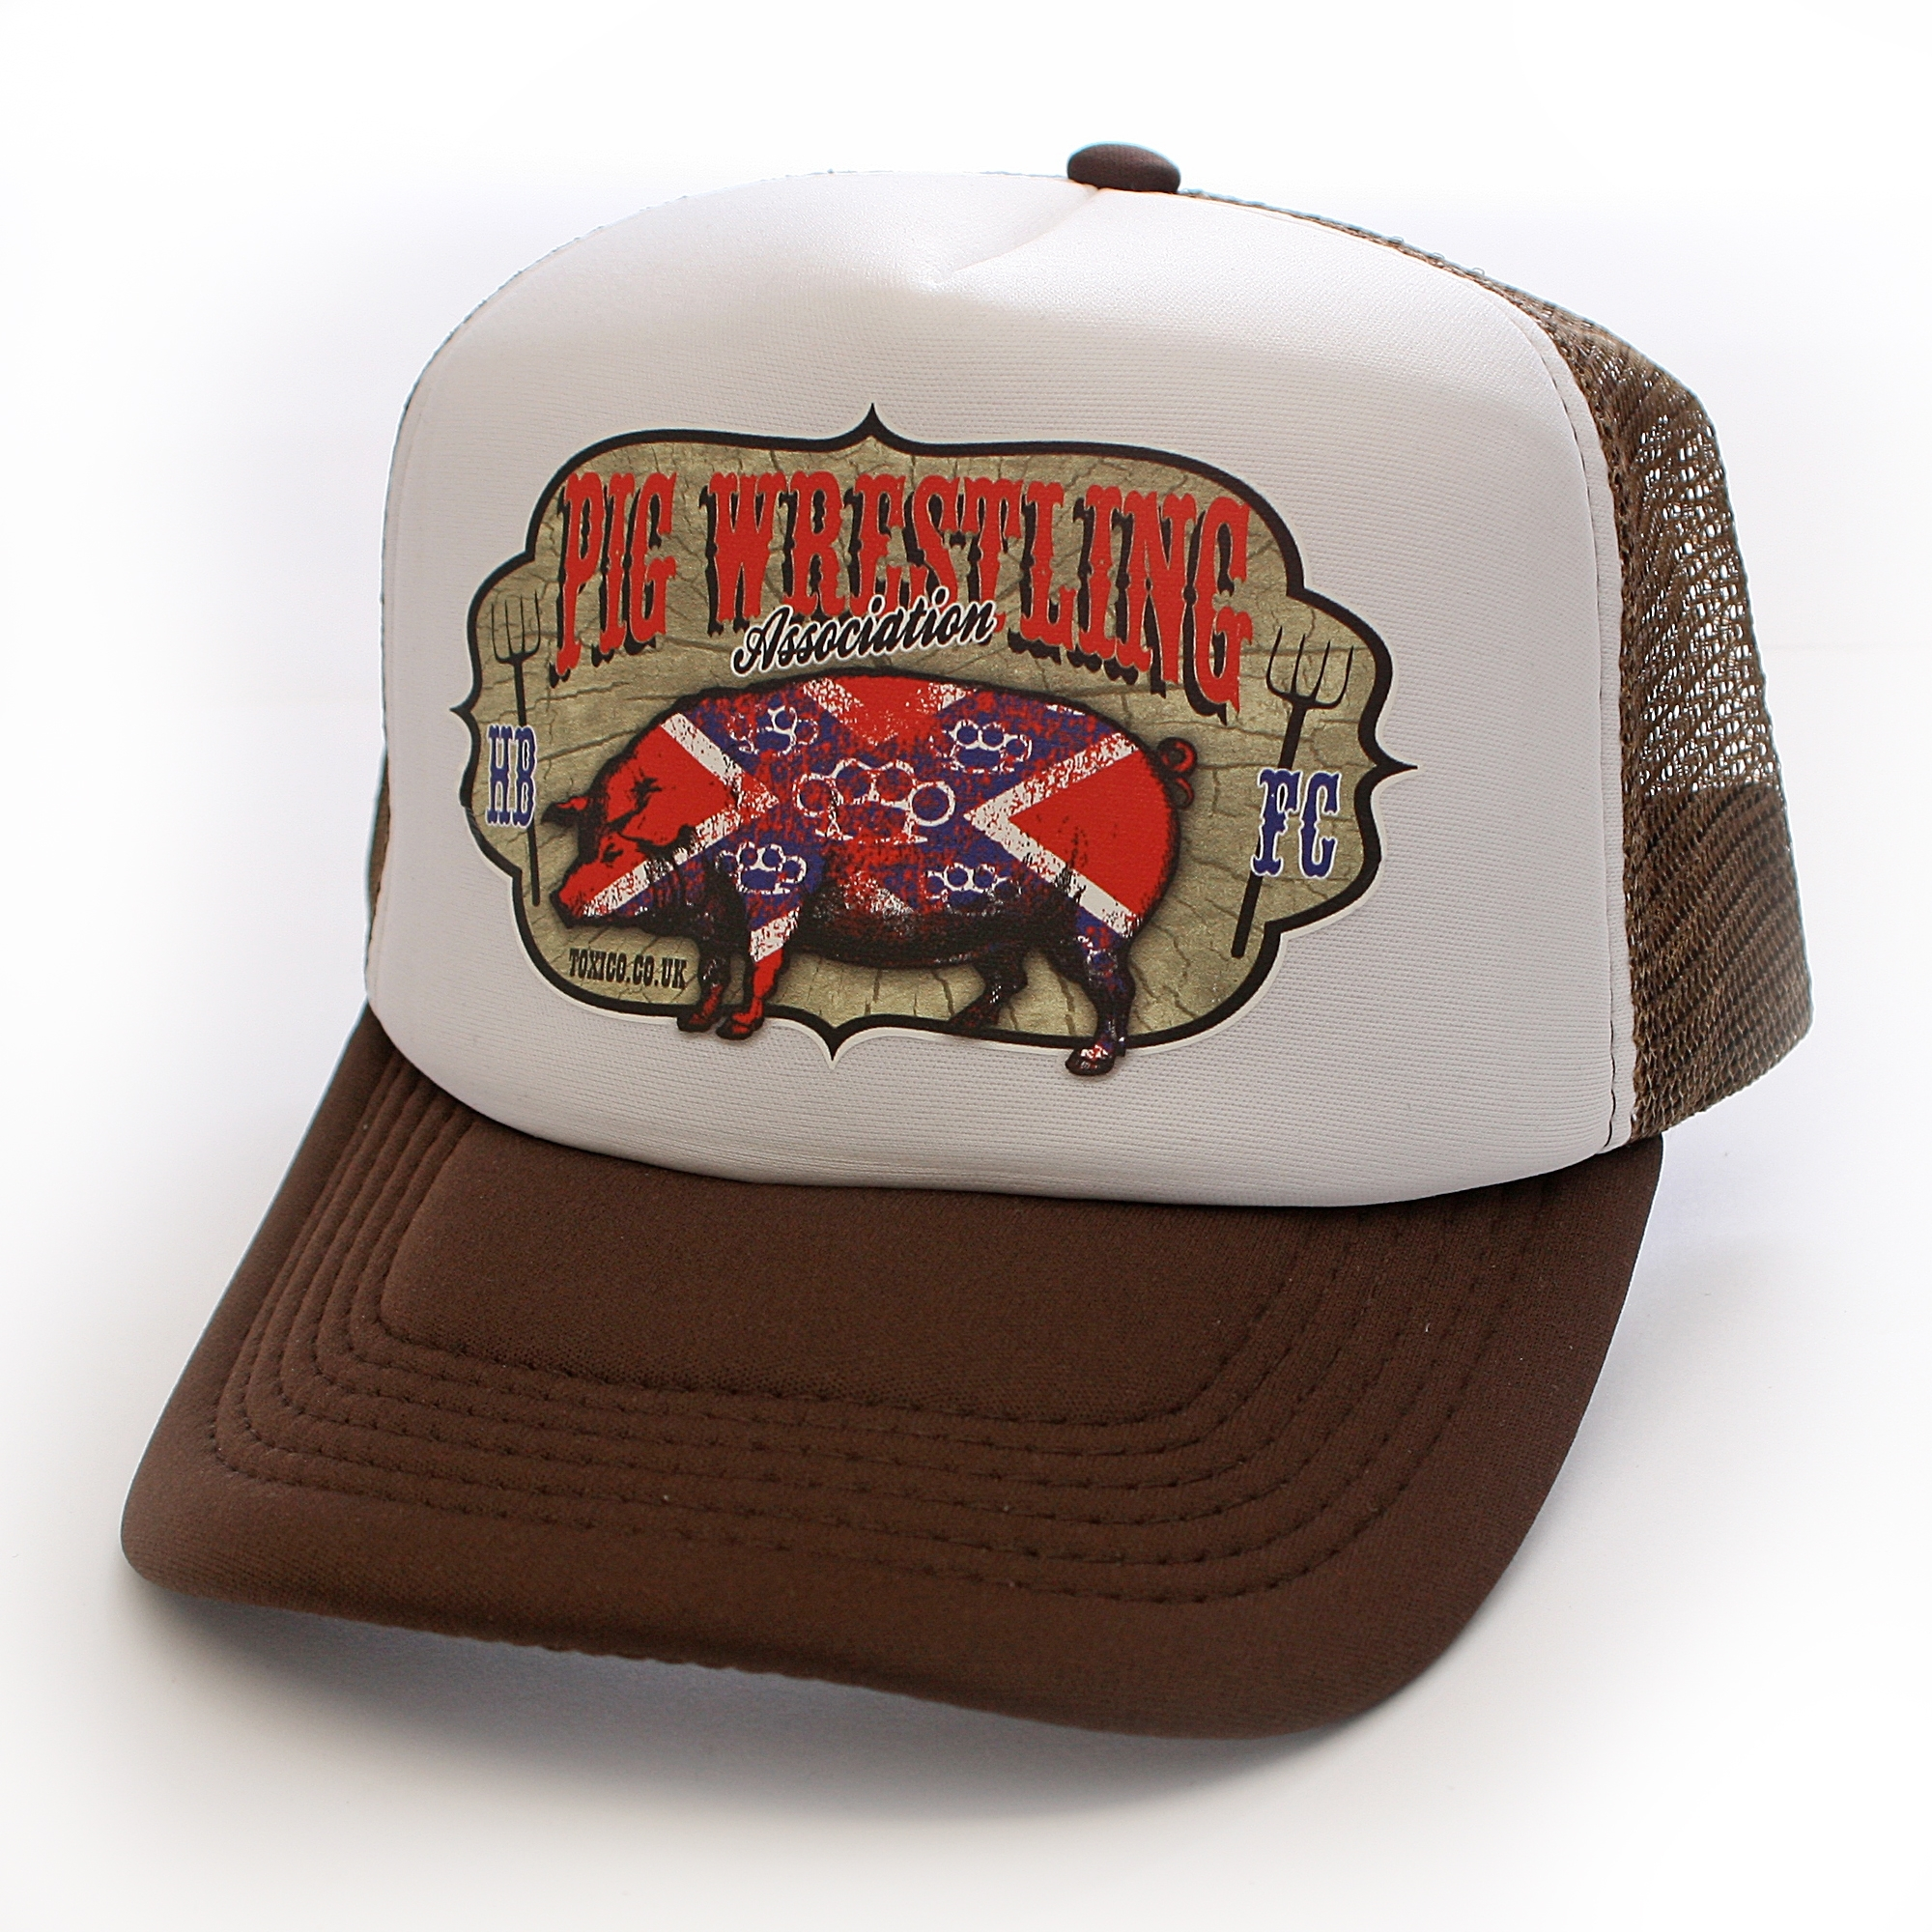 toxico_clothing_unisex_pig_wrestling_trucker_hat_hats_and_caps_2.jpg